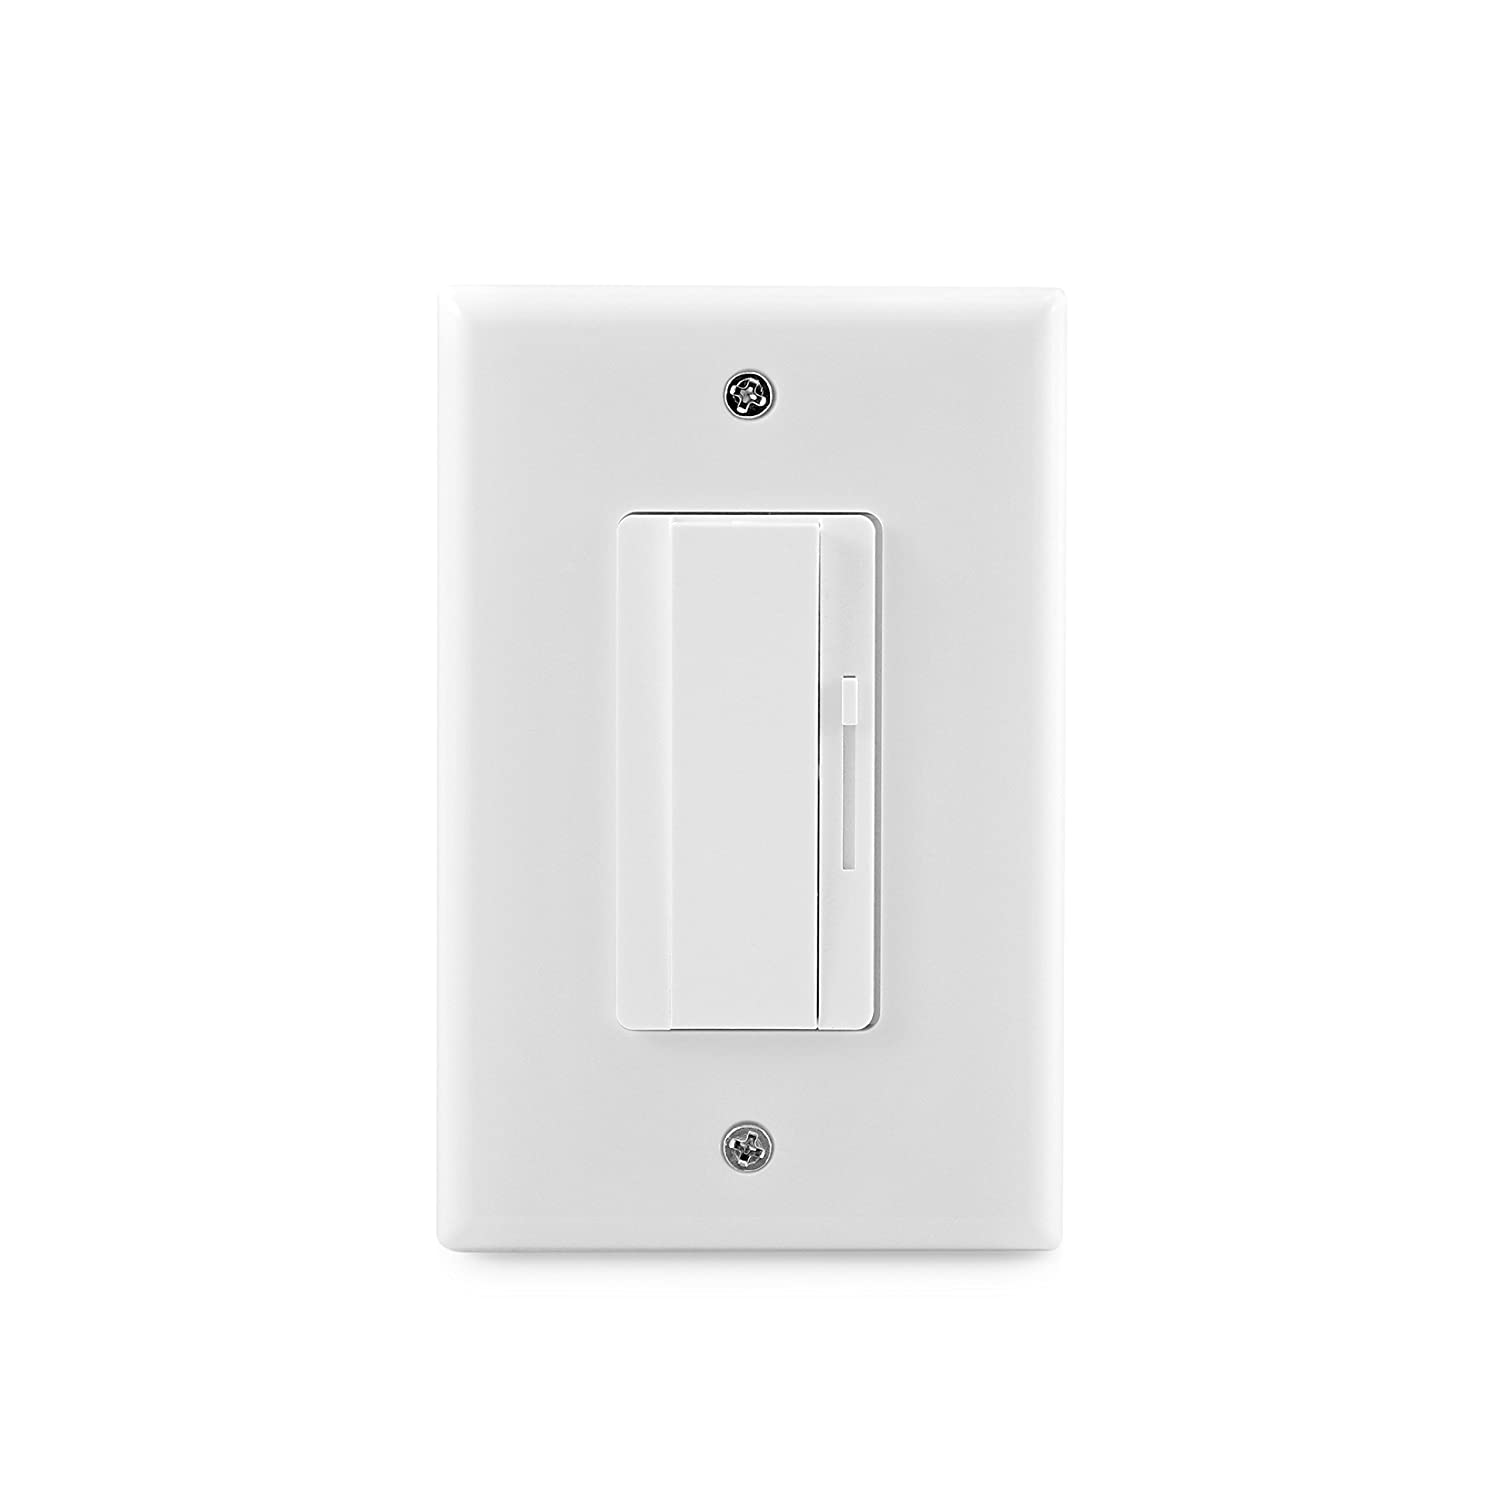 Hyperikon Led Dimmer Switch 3 Way Wall Single Pole Rocker And Flickering Slide Light 150w Cfl 700w Incandescent Halogen Fixtures White